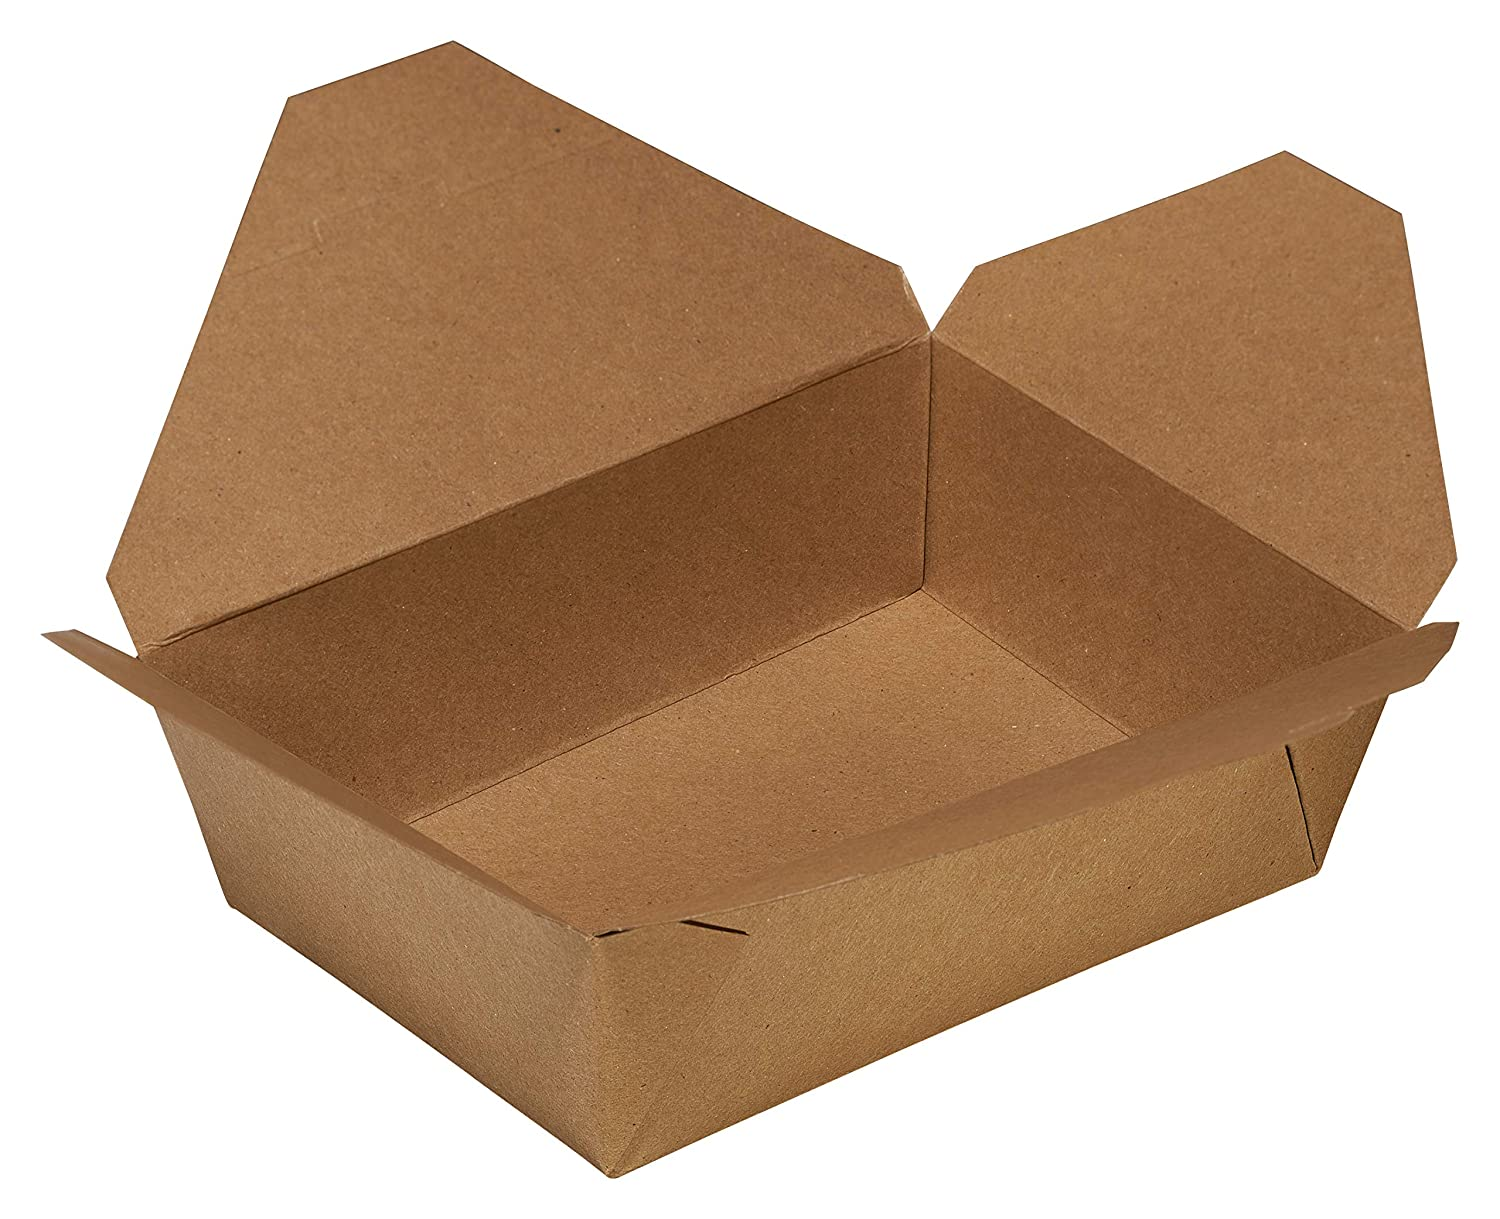 Take Out Food Containers 45 oz Kraft Brown Paper Take Out Boxes Microwaveable Leak and Grease Resistant Food Containers - To Go Containers for Restaurant, Catering, Food Truck - Recyclable Lunch Box #8 by EcoQuality (25)